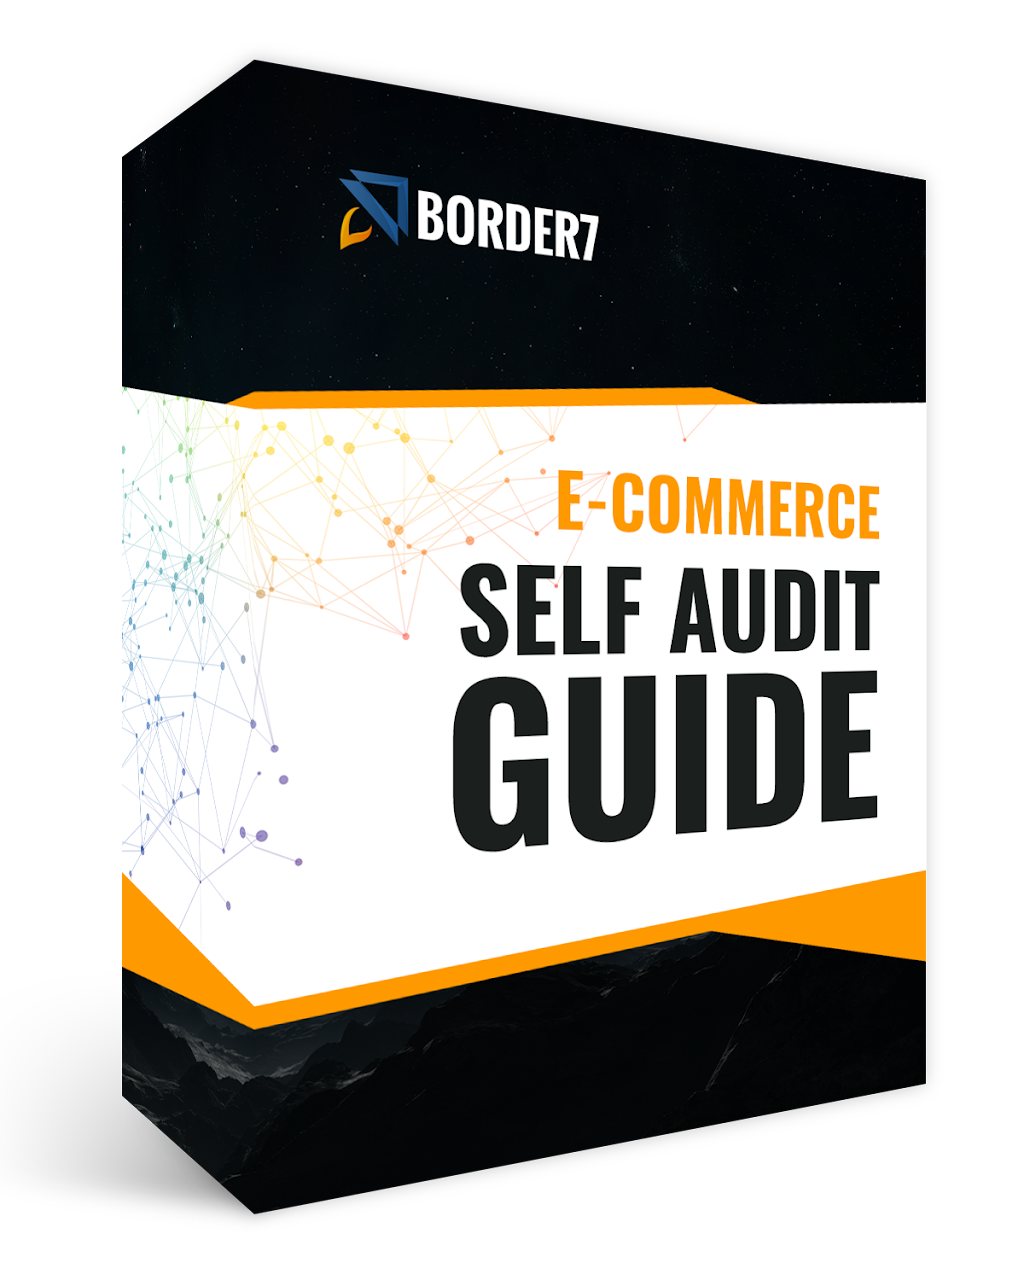 ecommerce self audit guide